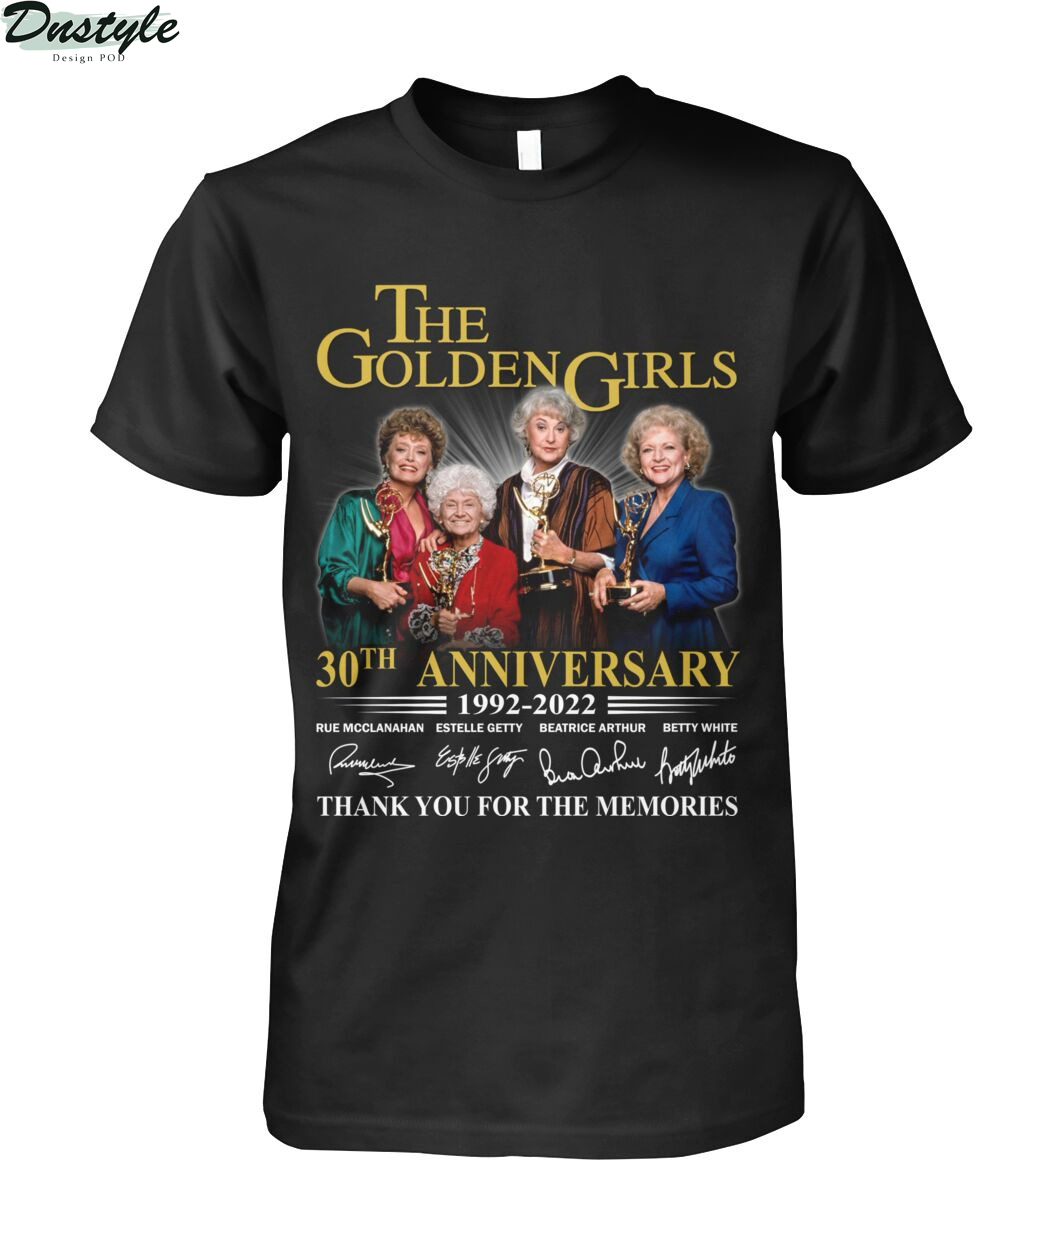 The golden girls 30th anniversary 1992 2022 thank you for the memories shirt